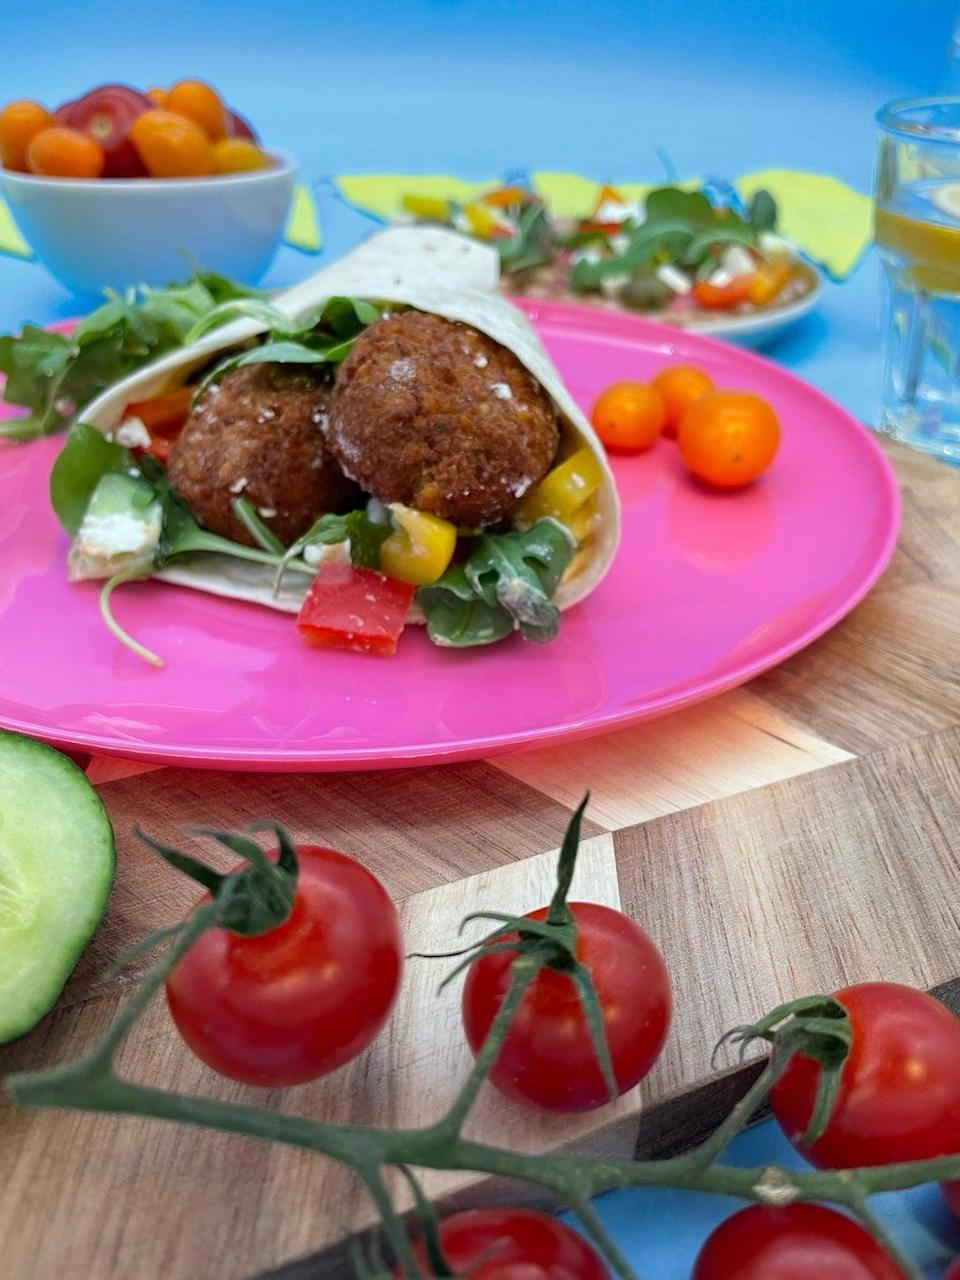 Falafel can be cooked from frozen for a quick and filling meal (Ramona's Kitchen)